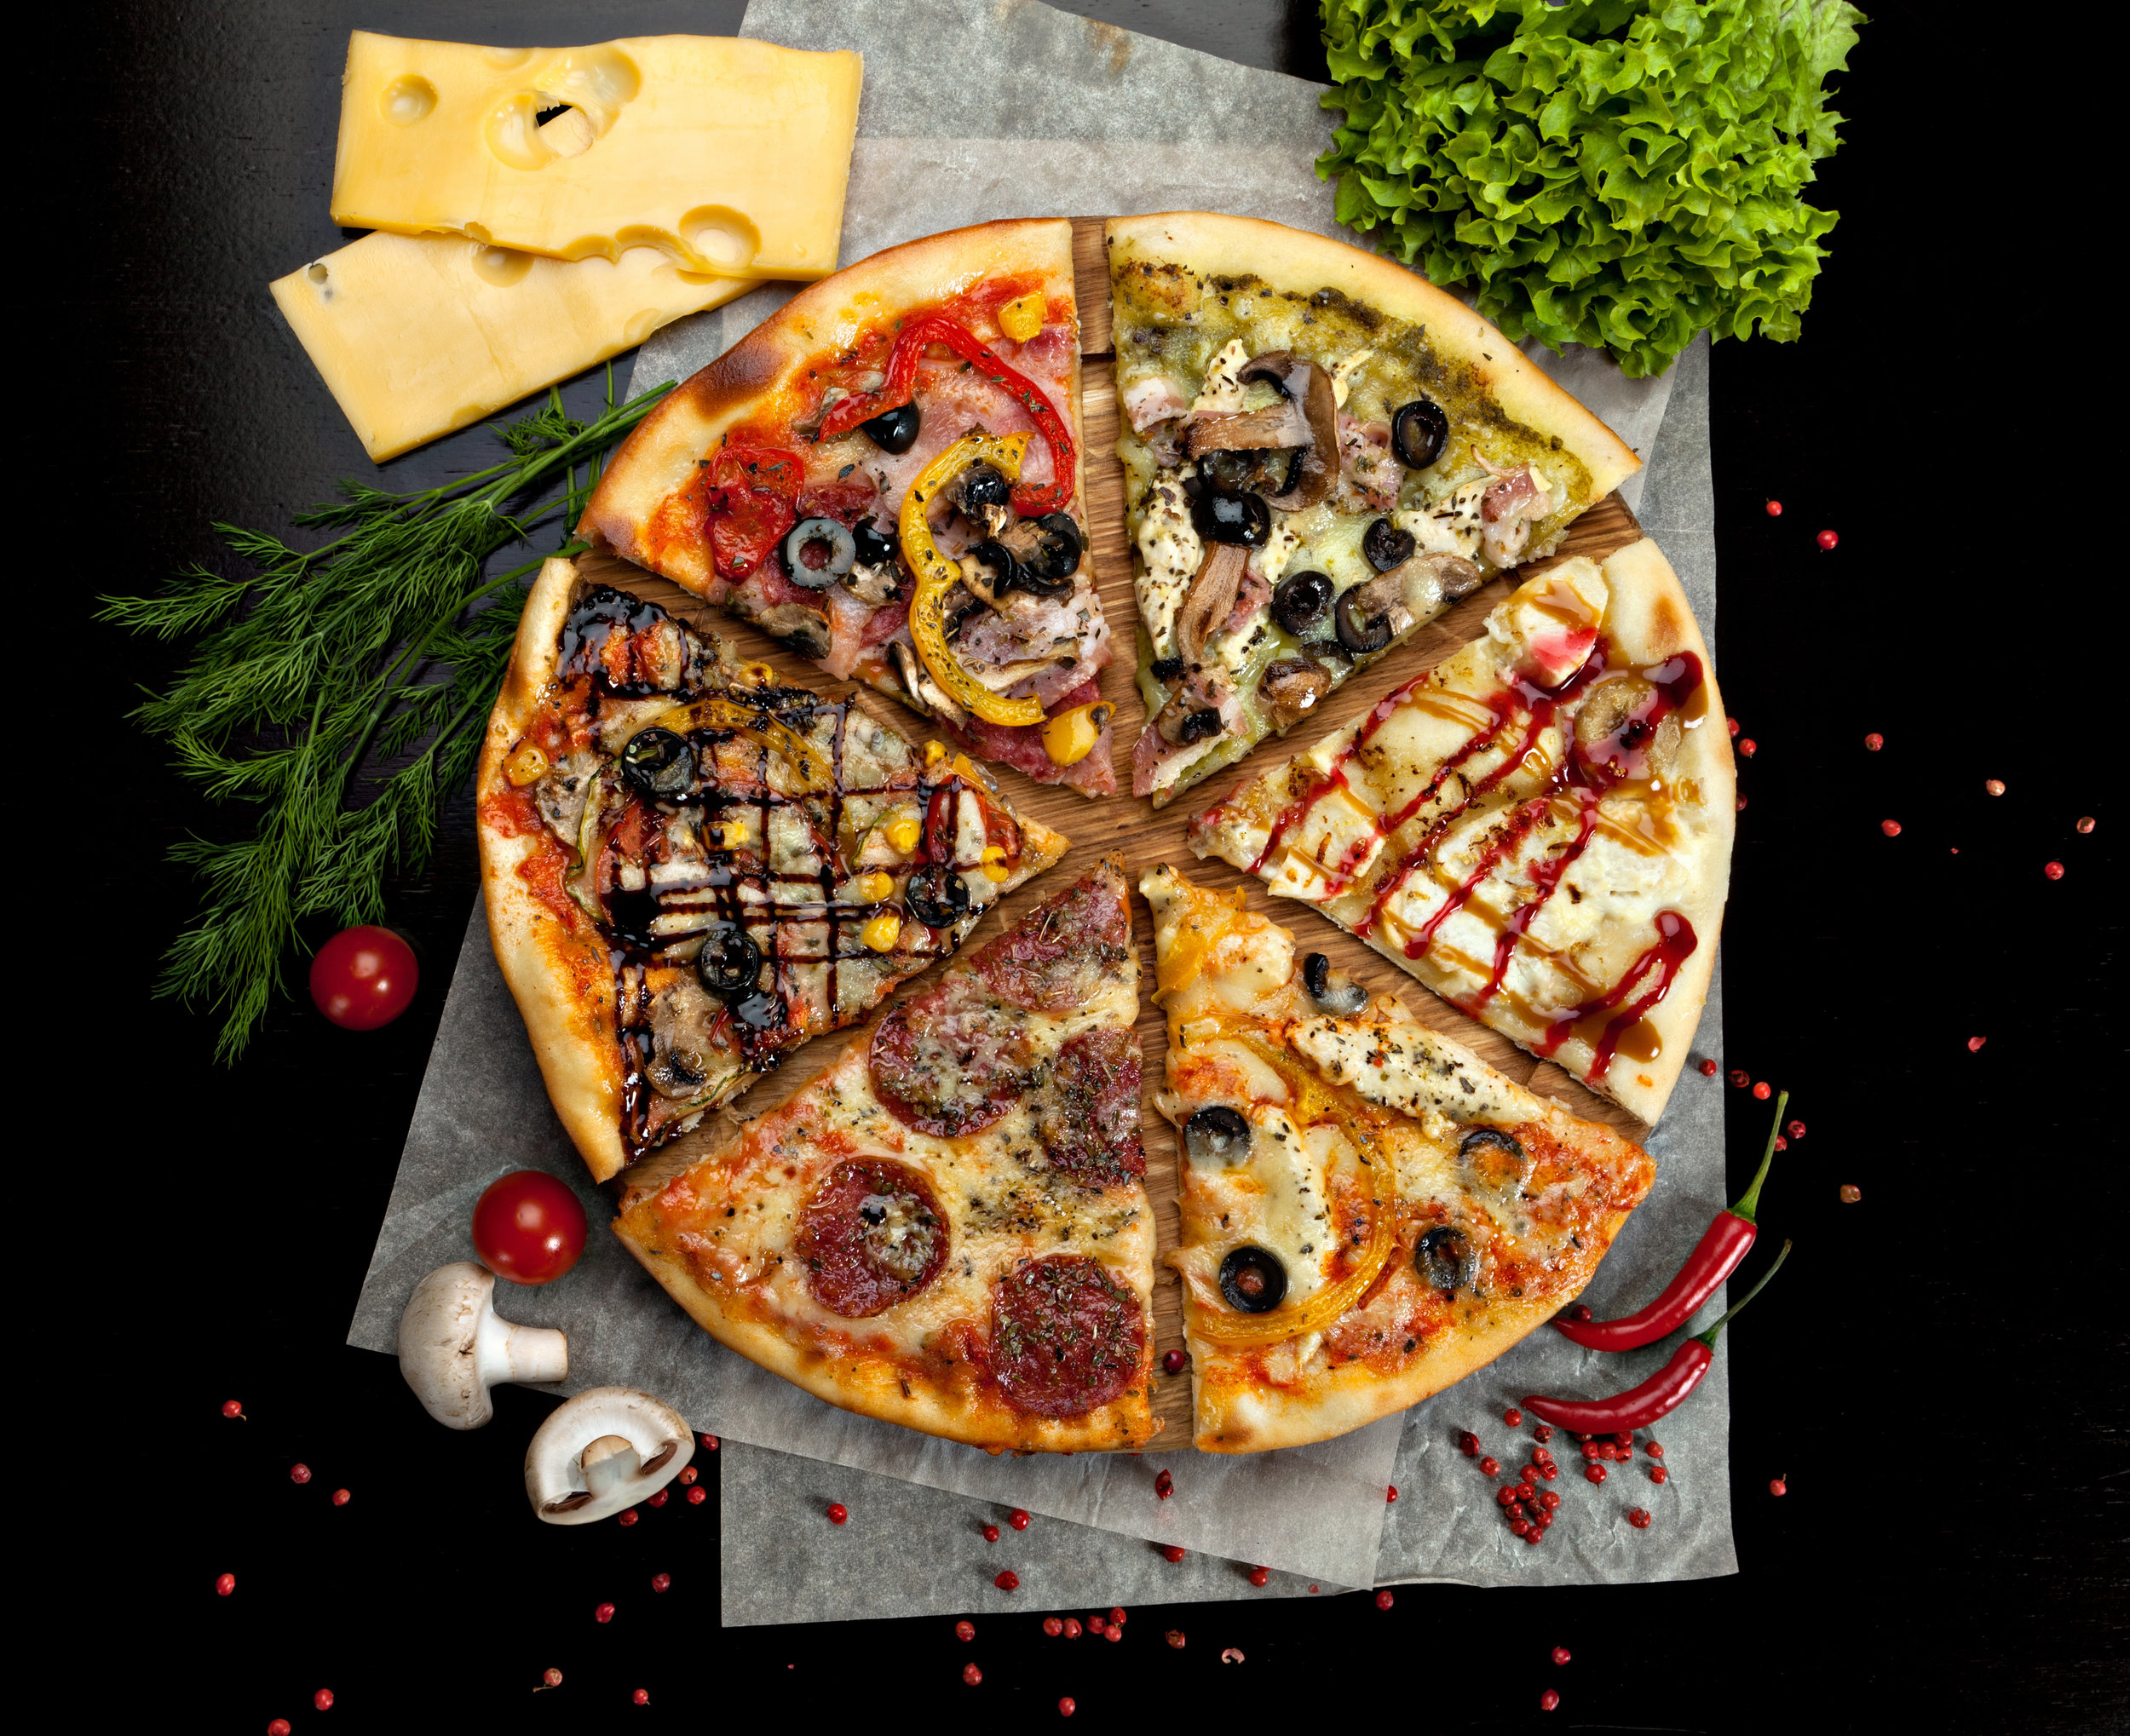 World Inspired - Our pizzas are inspired by cuisines from all over the globe - America, India, China, Ethiopia, Portugal, Hawaii, Greece and many more. They are plenty of home-style Italian pizzas too. It's not just something you eat, it's an experience of the whole world on a plate, and the best part... you don't need a ticket to travel.